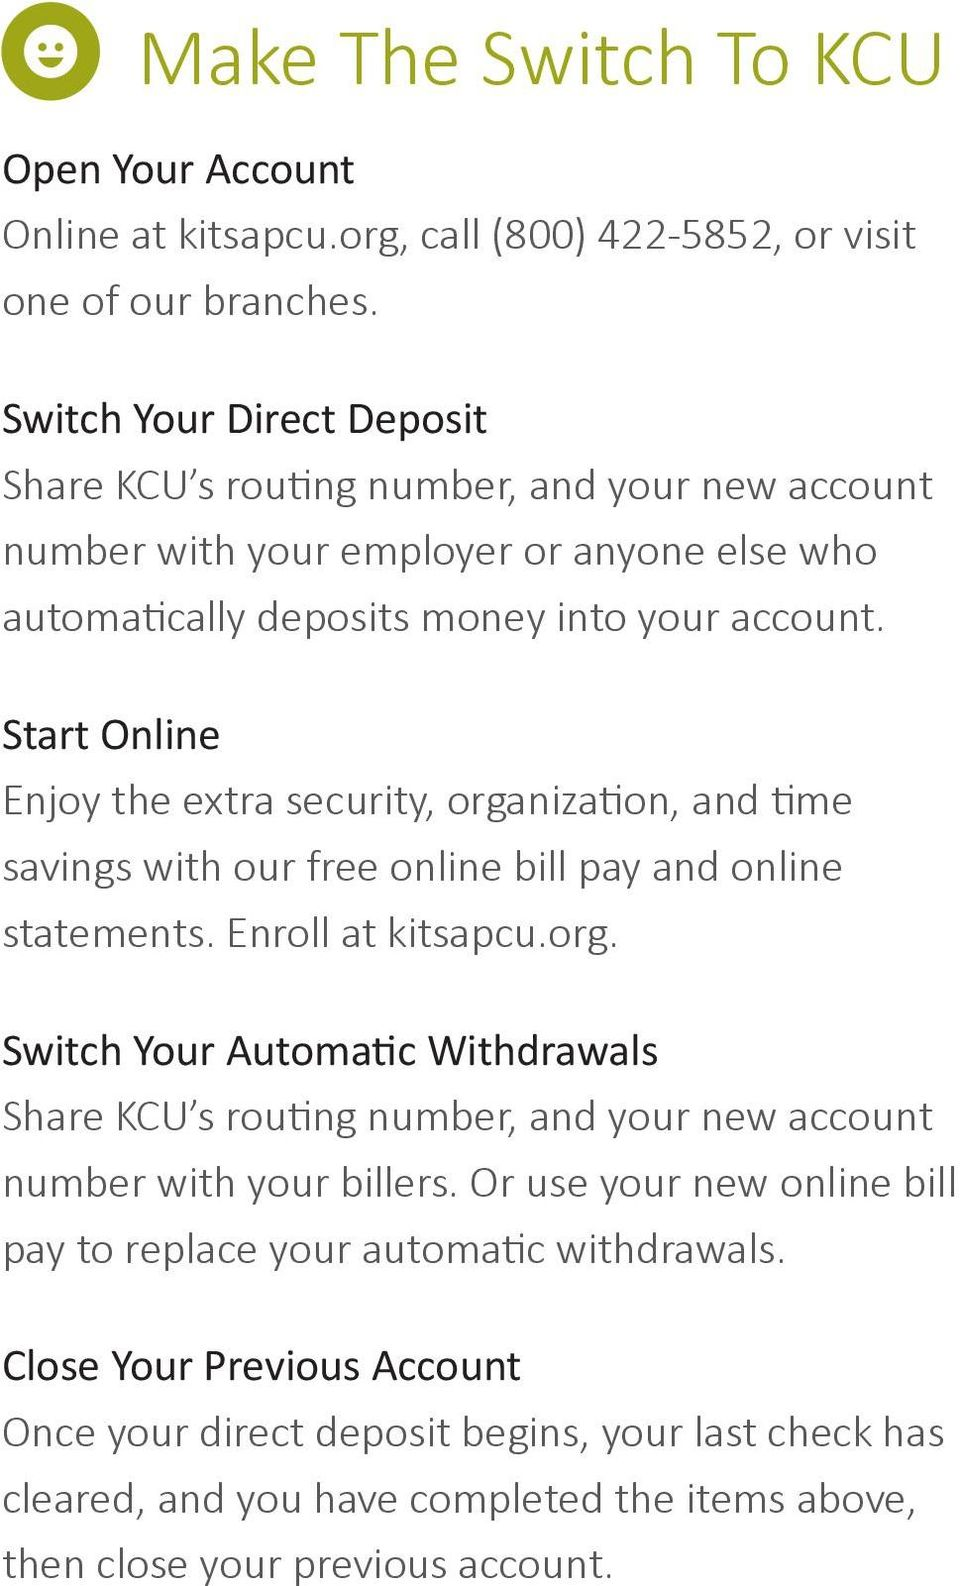 Start Online Enjoy the extra security, organization, and time savings with our free online bill pay and online statements. Enroll at kitsapcu.org. Switch Your Automatic Withdrawals Share KCU s routing number, and your new account number with your billers.